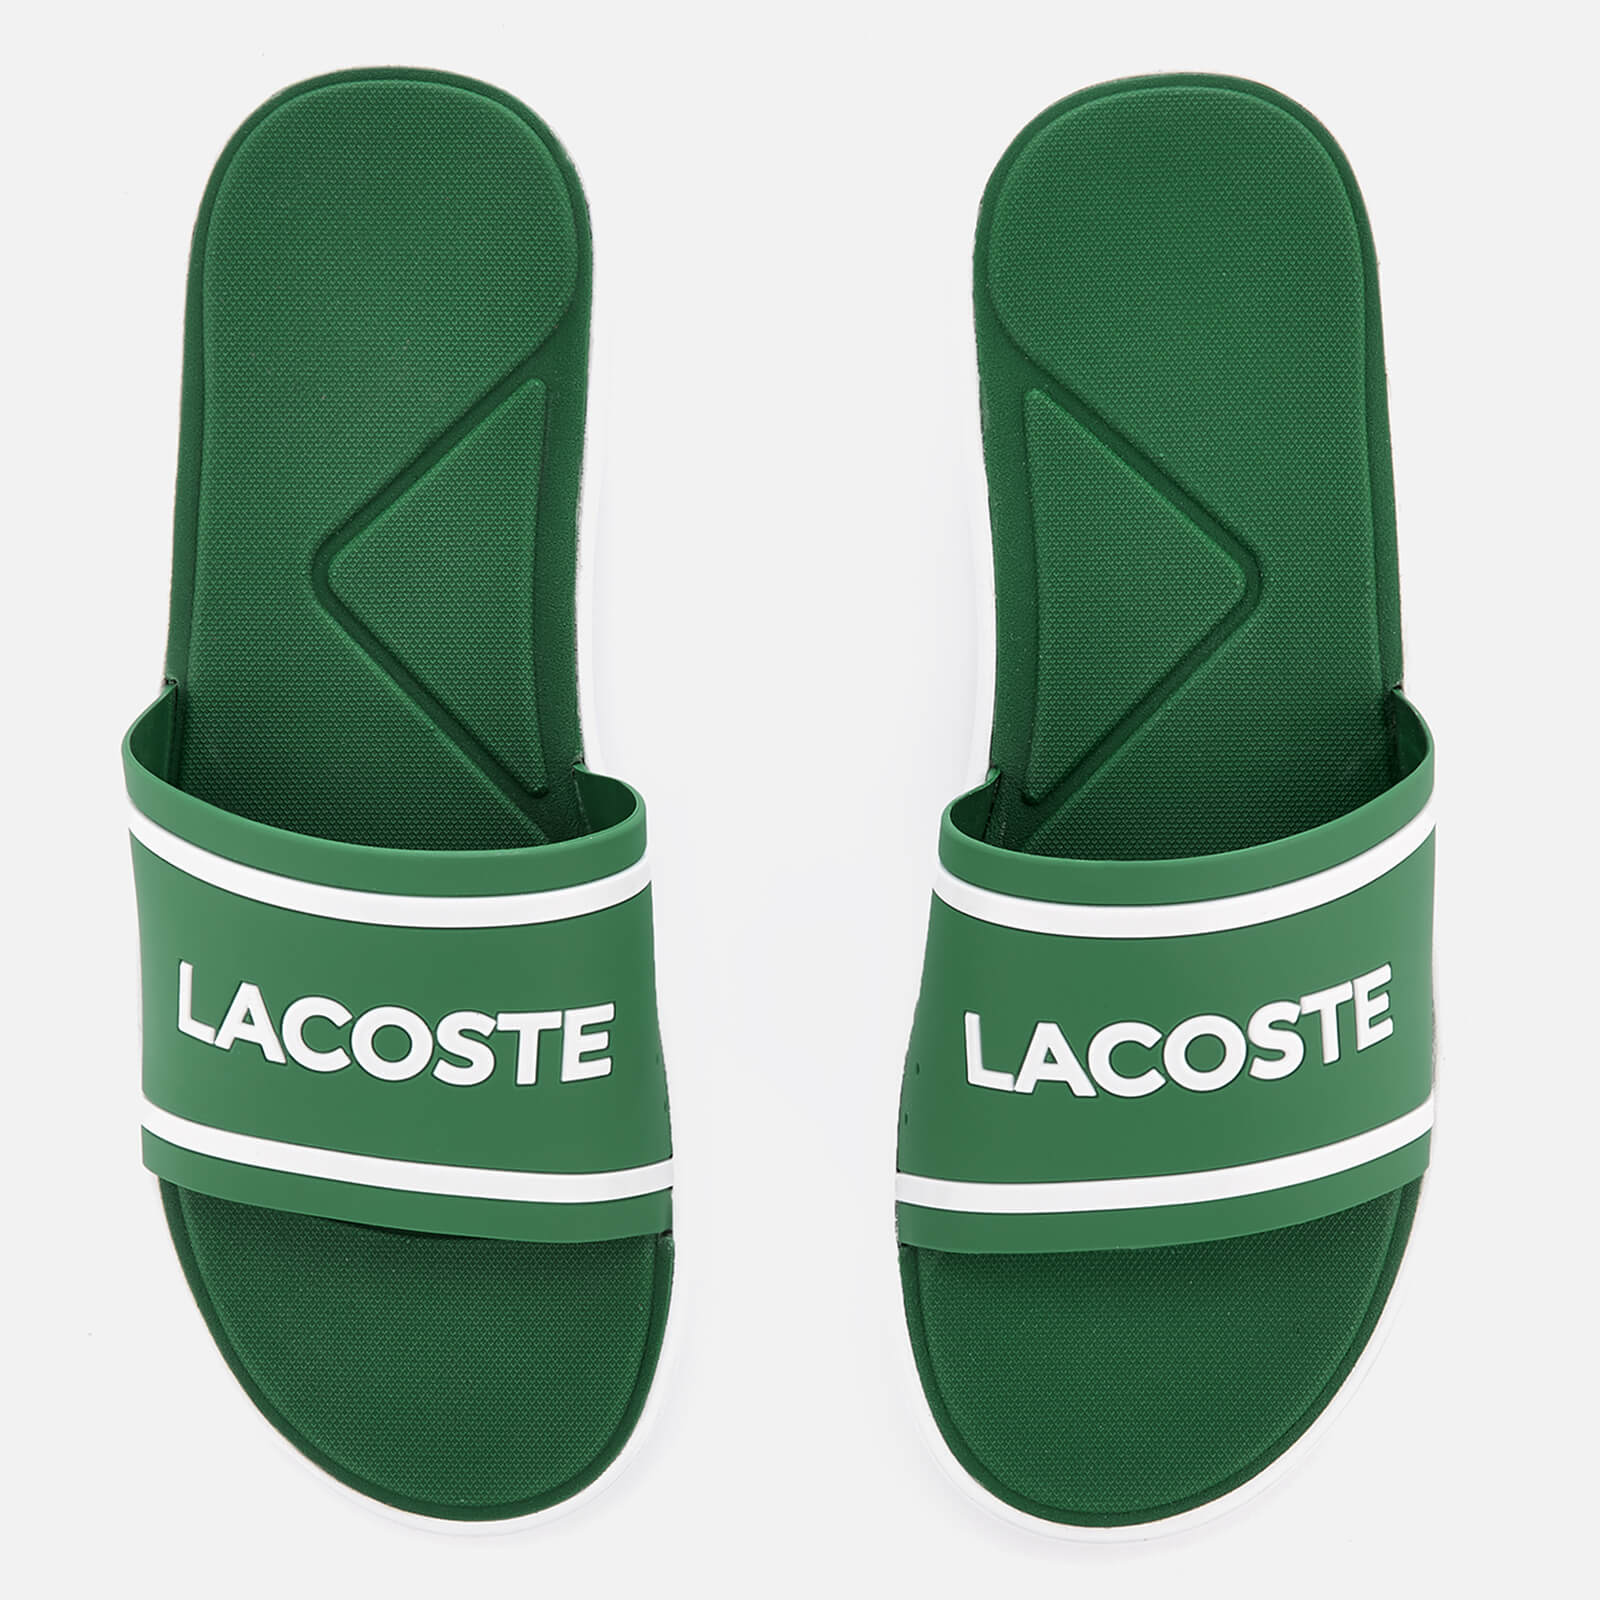 7f57750ddea3b Lacoste Men s L.30 118 2 Slide Sandals - Green White - Free UK Delivery  over £50